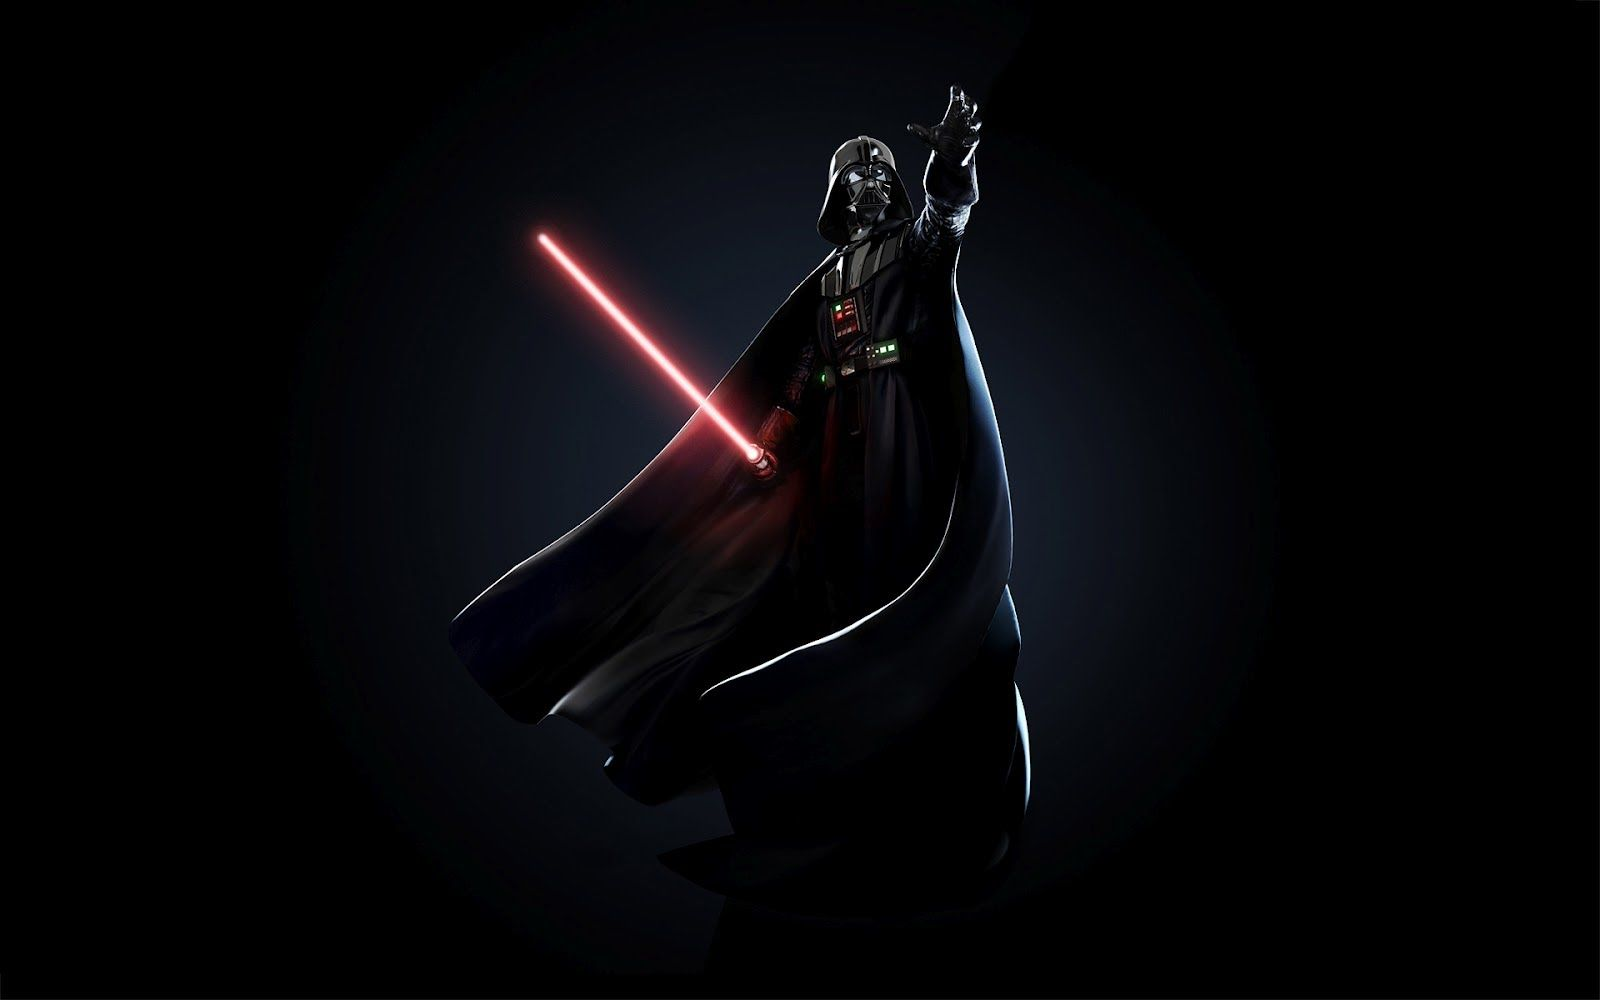 Live Wallpaper Hd Star Wars Wallpaper Darth Vader Hd Wallpaper Darth Vader Wallpaper